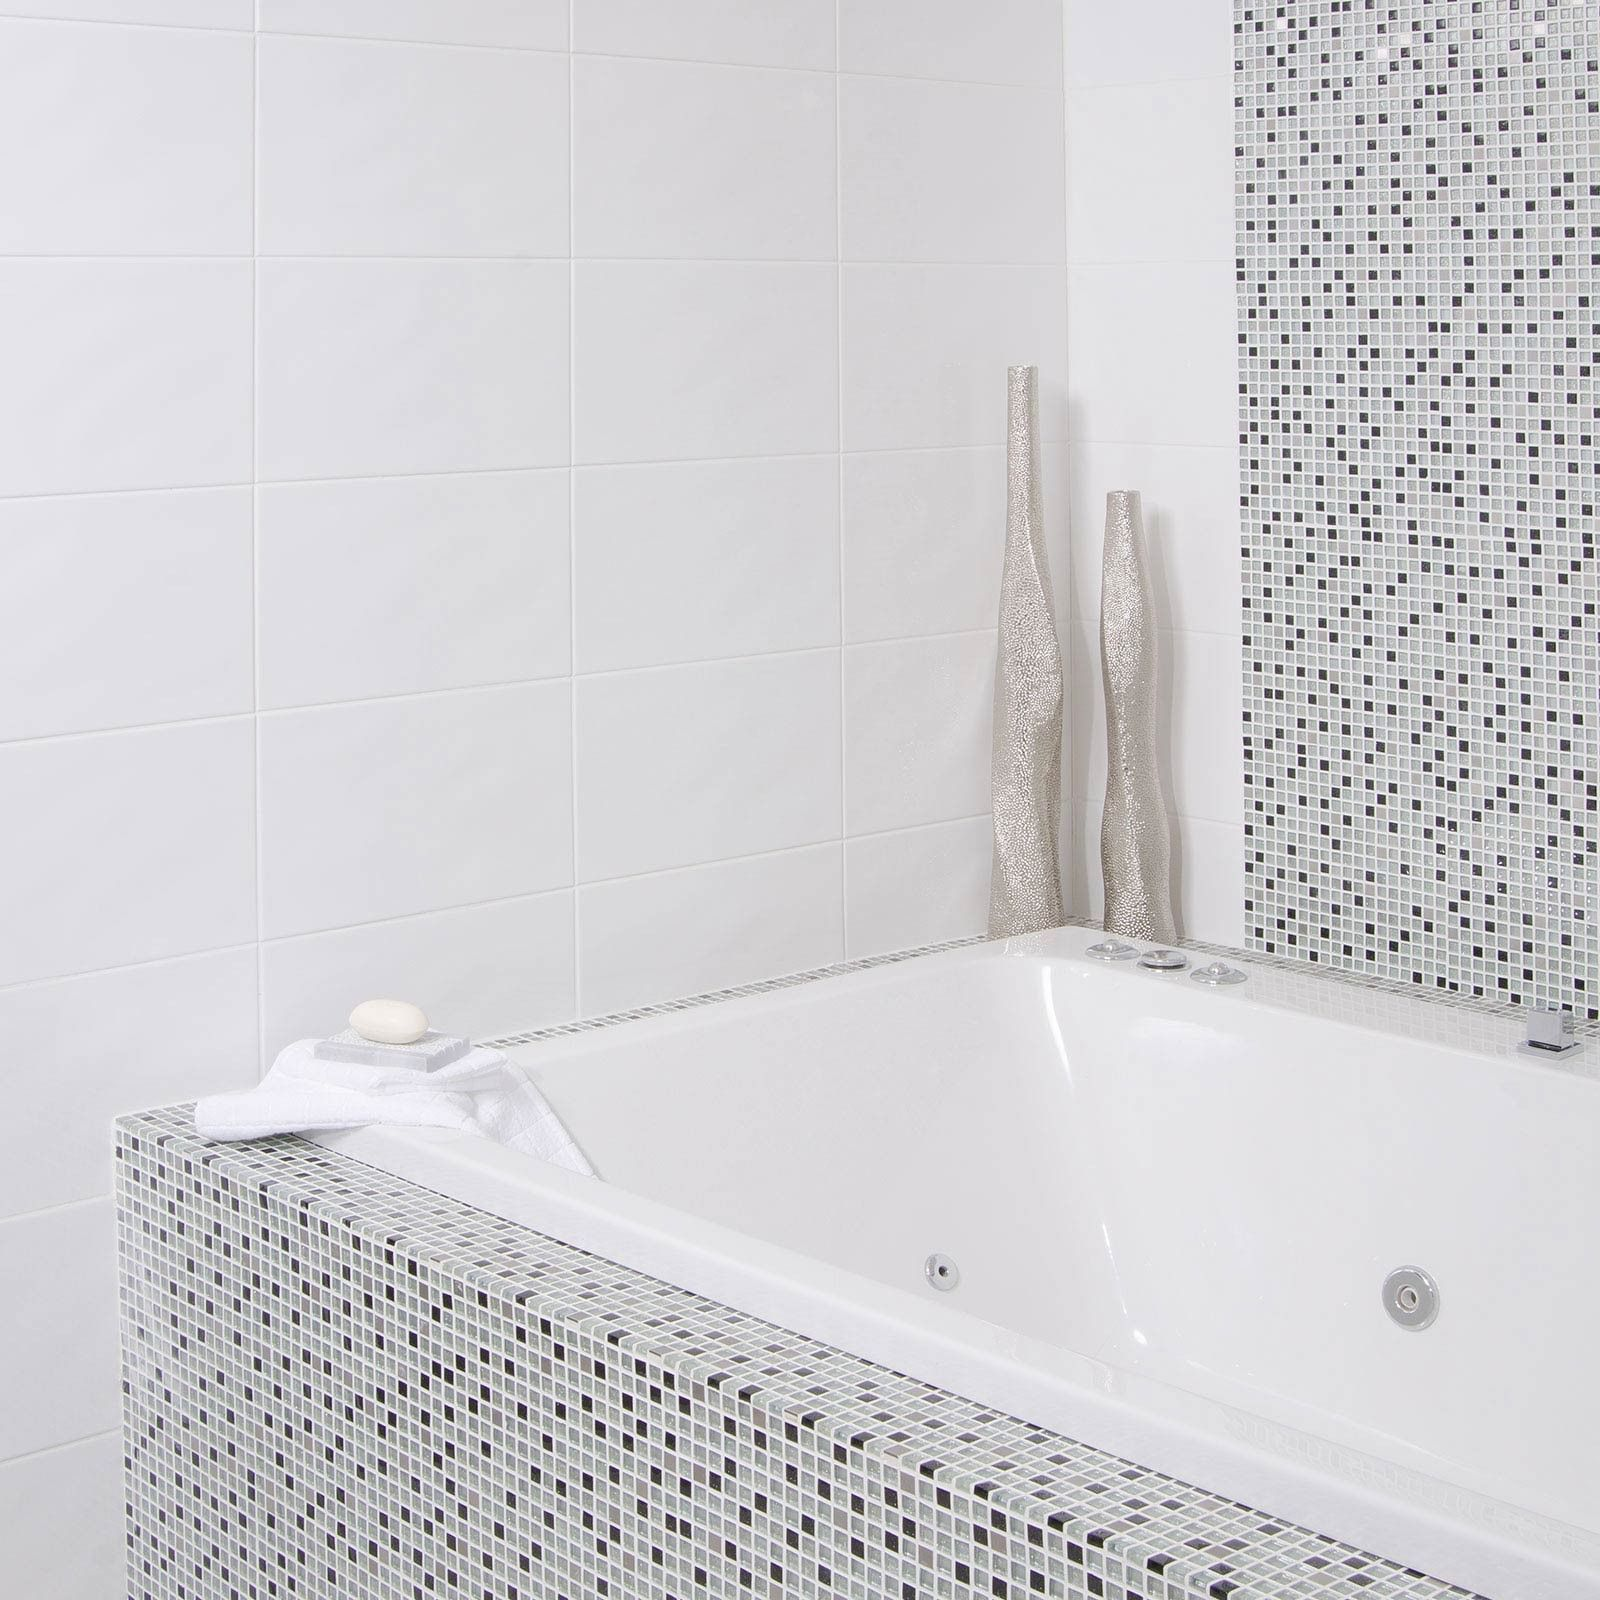 White Bathroom Tiles With Border Bathroom Tiles With Border ...